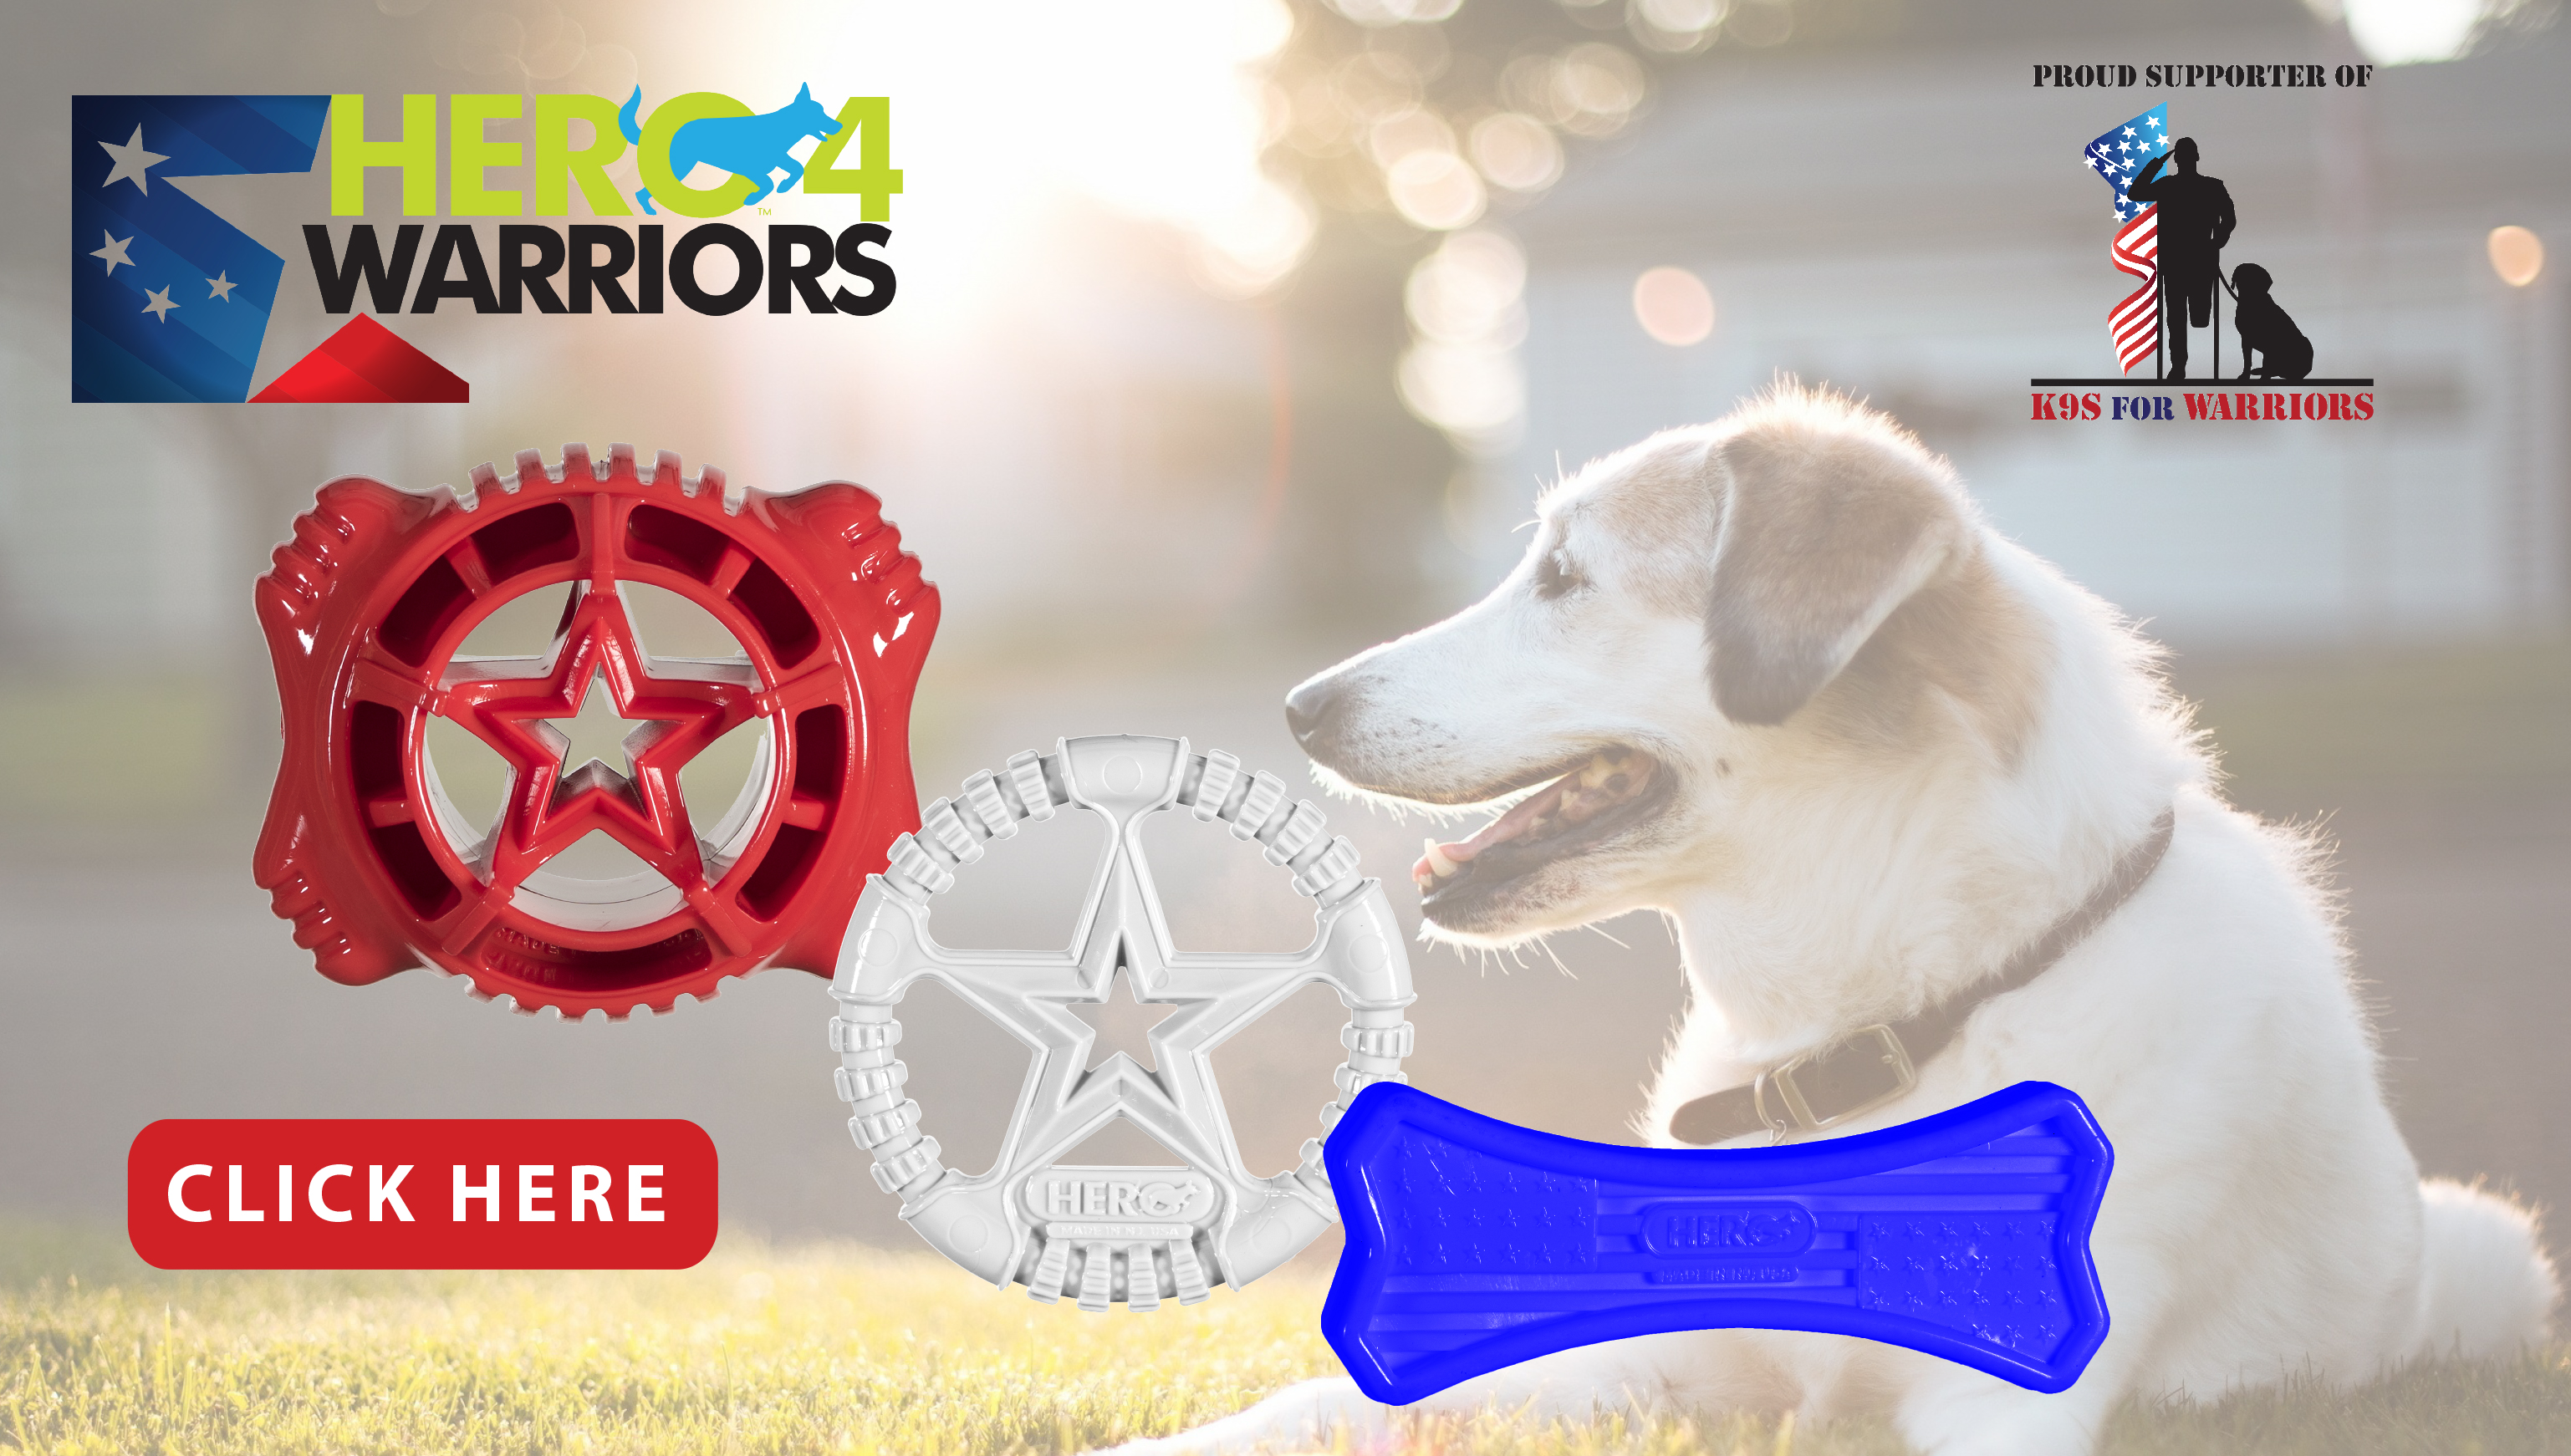 New at JMI Pet Supply - Hero 4 Warriors USA Dog Toys